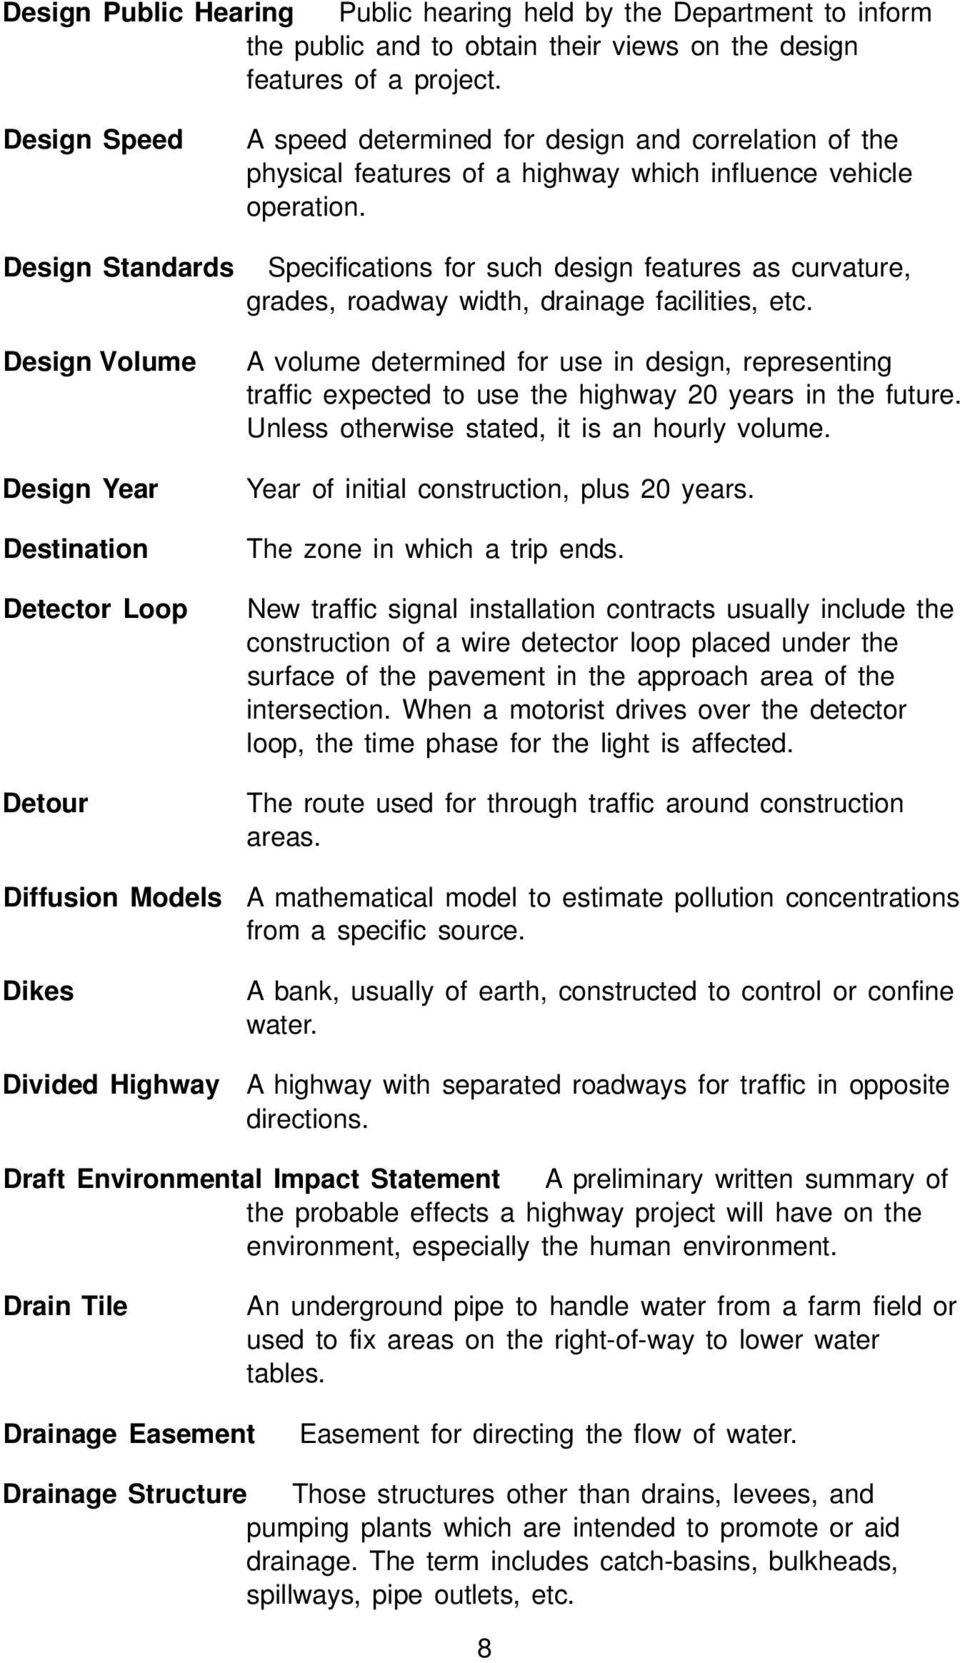 Design Standards Specifications for such design features as curvature, grades, roadway width, drainage facilities, etc.